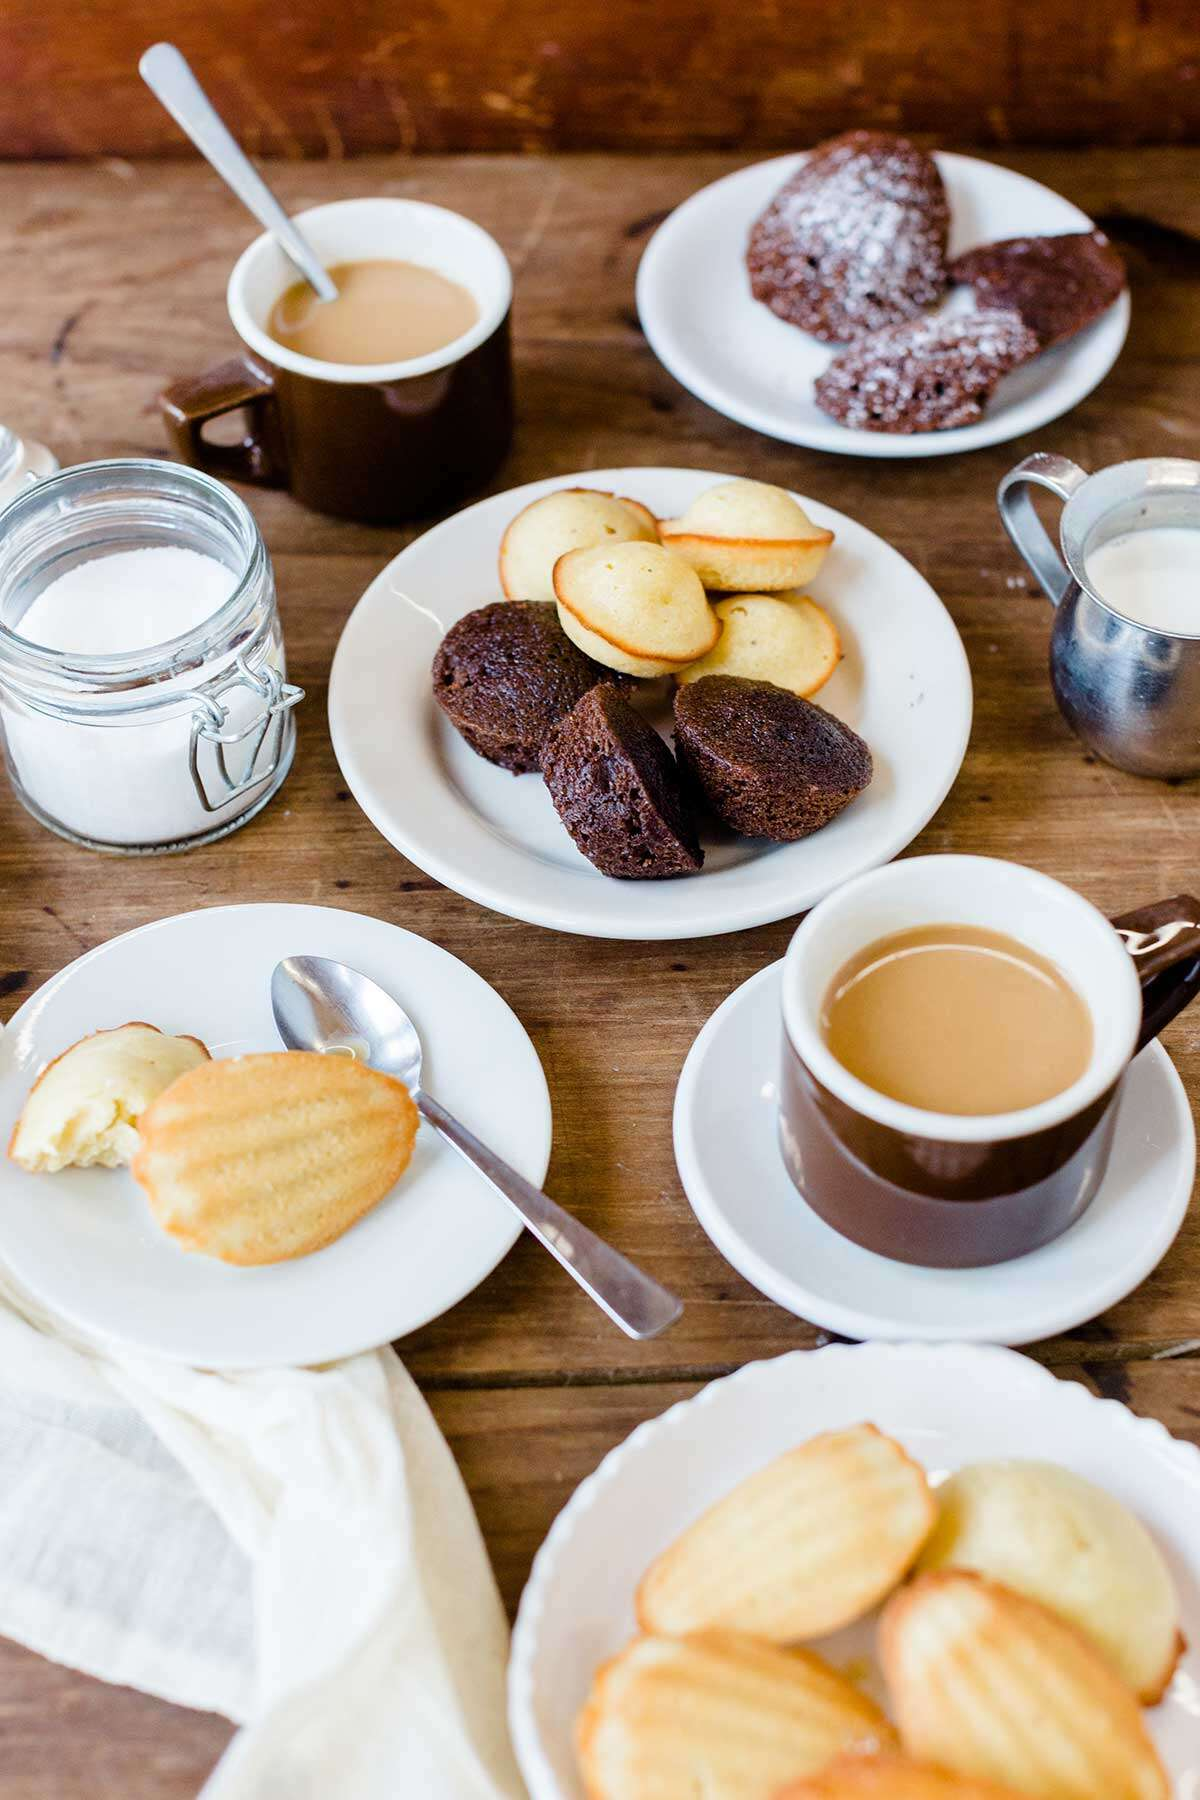 A table arranged with a platter of madeleines, coffee cups, plates, spoons, and a jar of sugar